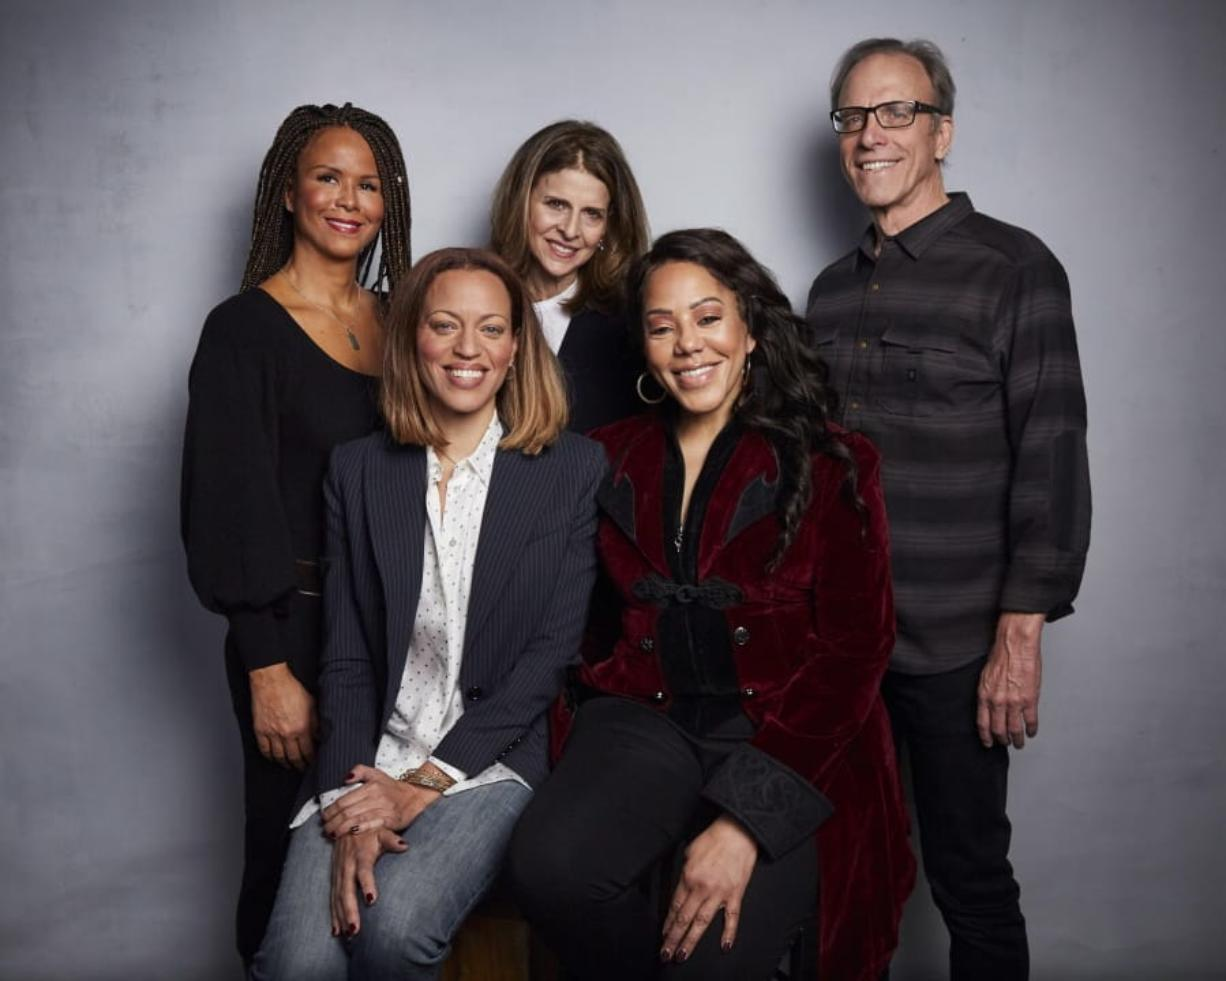 """FILE - In this Jan. 26, 2020 file photo, Sil Lai Abrams, back row from left, director Amy Ziering, director Kirby Dick, Drew Dixon, seated left, and Sheri Hines pose for a portrait to promote the film """"On the Record"""" at the Music Lodge during the Sundance Film Festival in Park City, Utah. The film provides an intimate portrayal of the agonizing process of calculating whether to go public with harassment and abuse claims."""